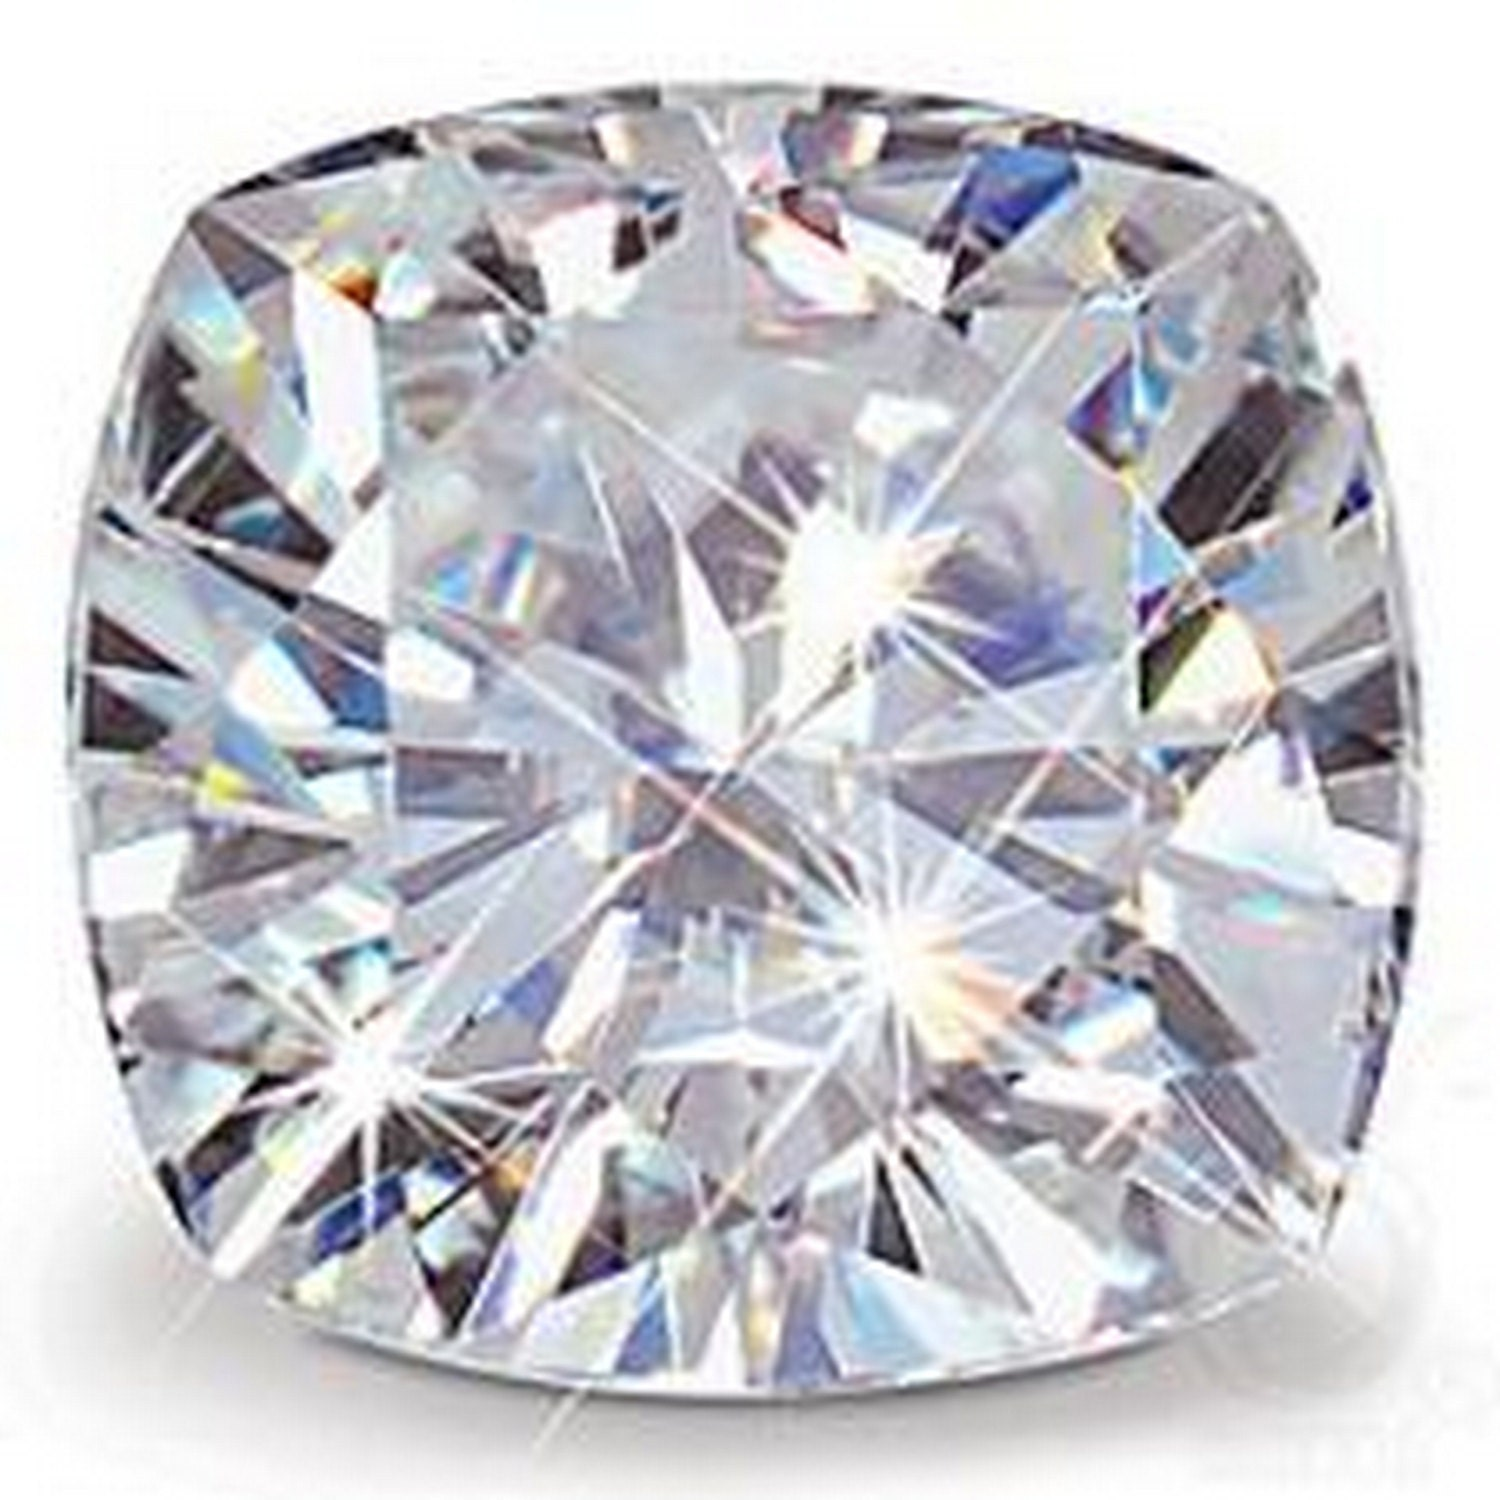 gemstone round untitled super premium moissanite